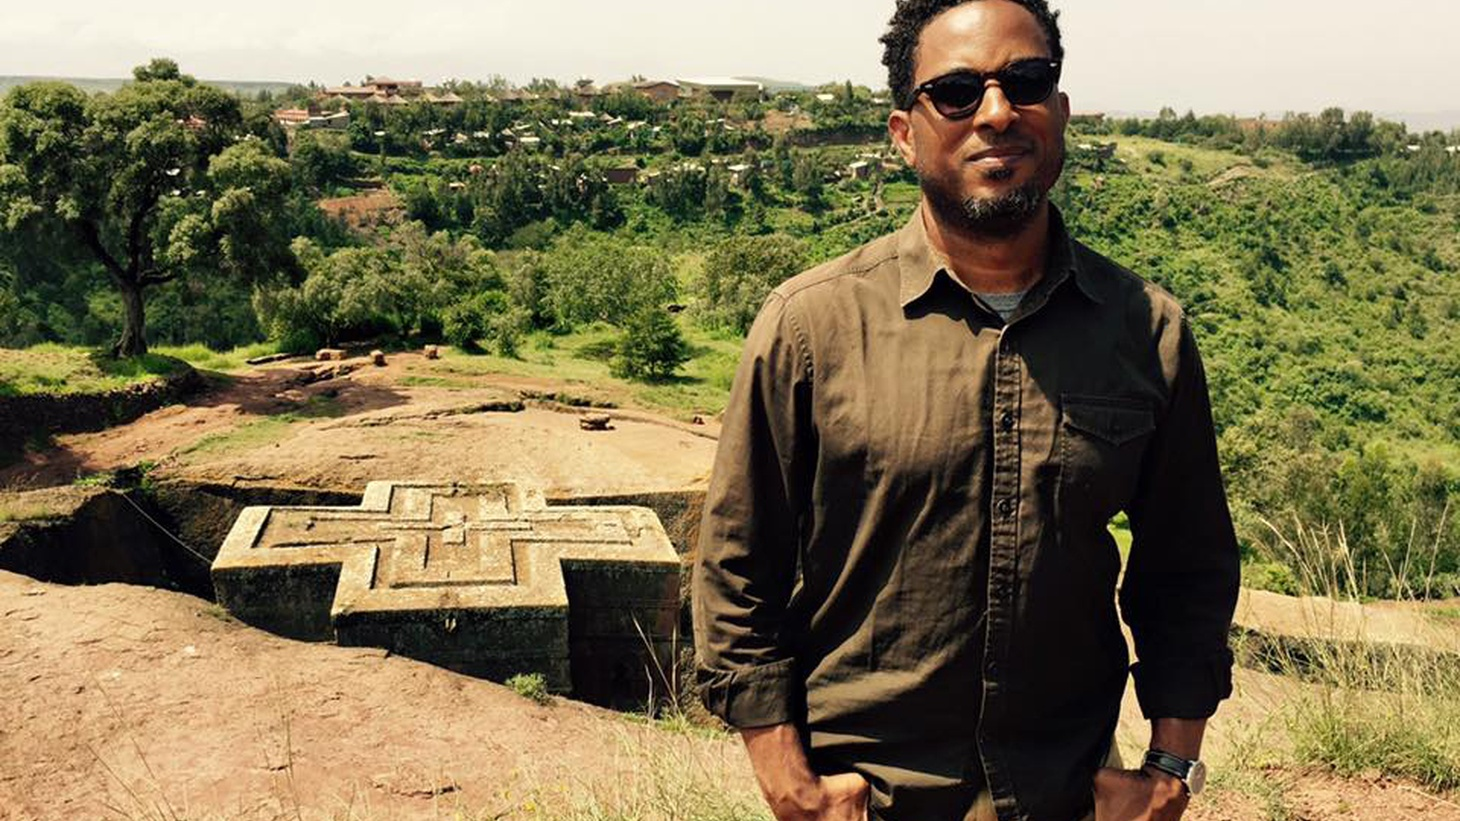 "Dexter Story is a LA-based multi-instrumentalist and producer. His new album, Wondem, has influences of Ethiopian music and translates into ""Brother"" in Amharic, the country's native language."